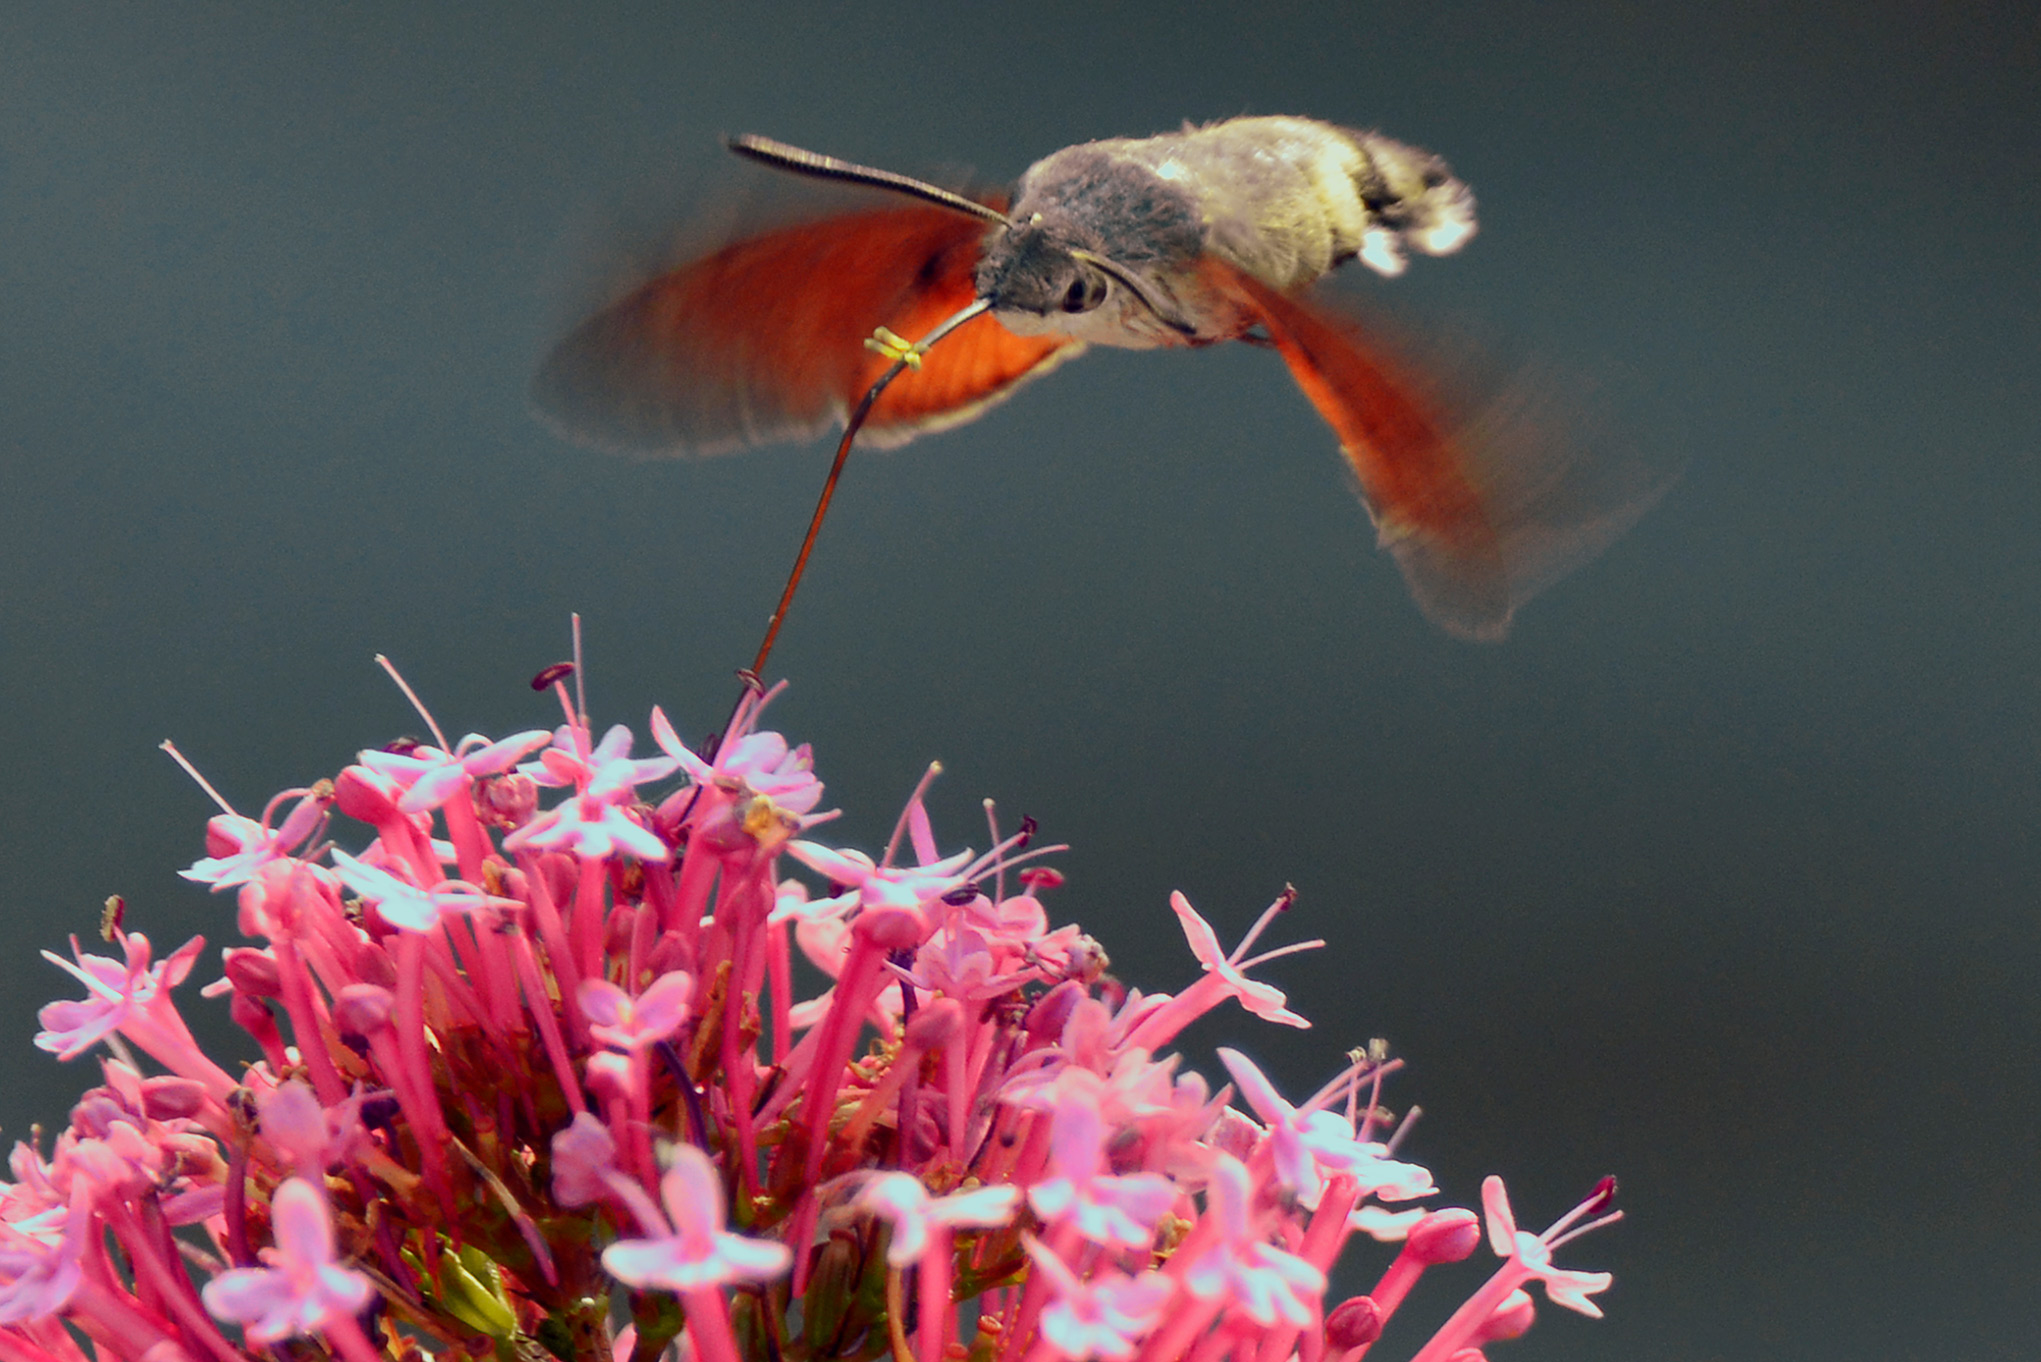 The ever-present Hummingbird Hawk Moth at work on the Red Velarians